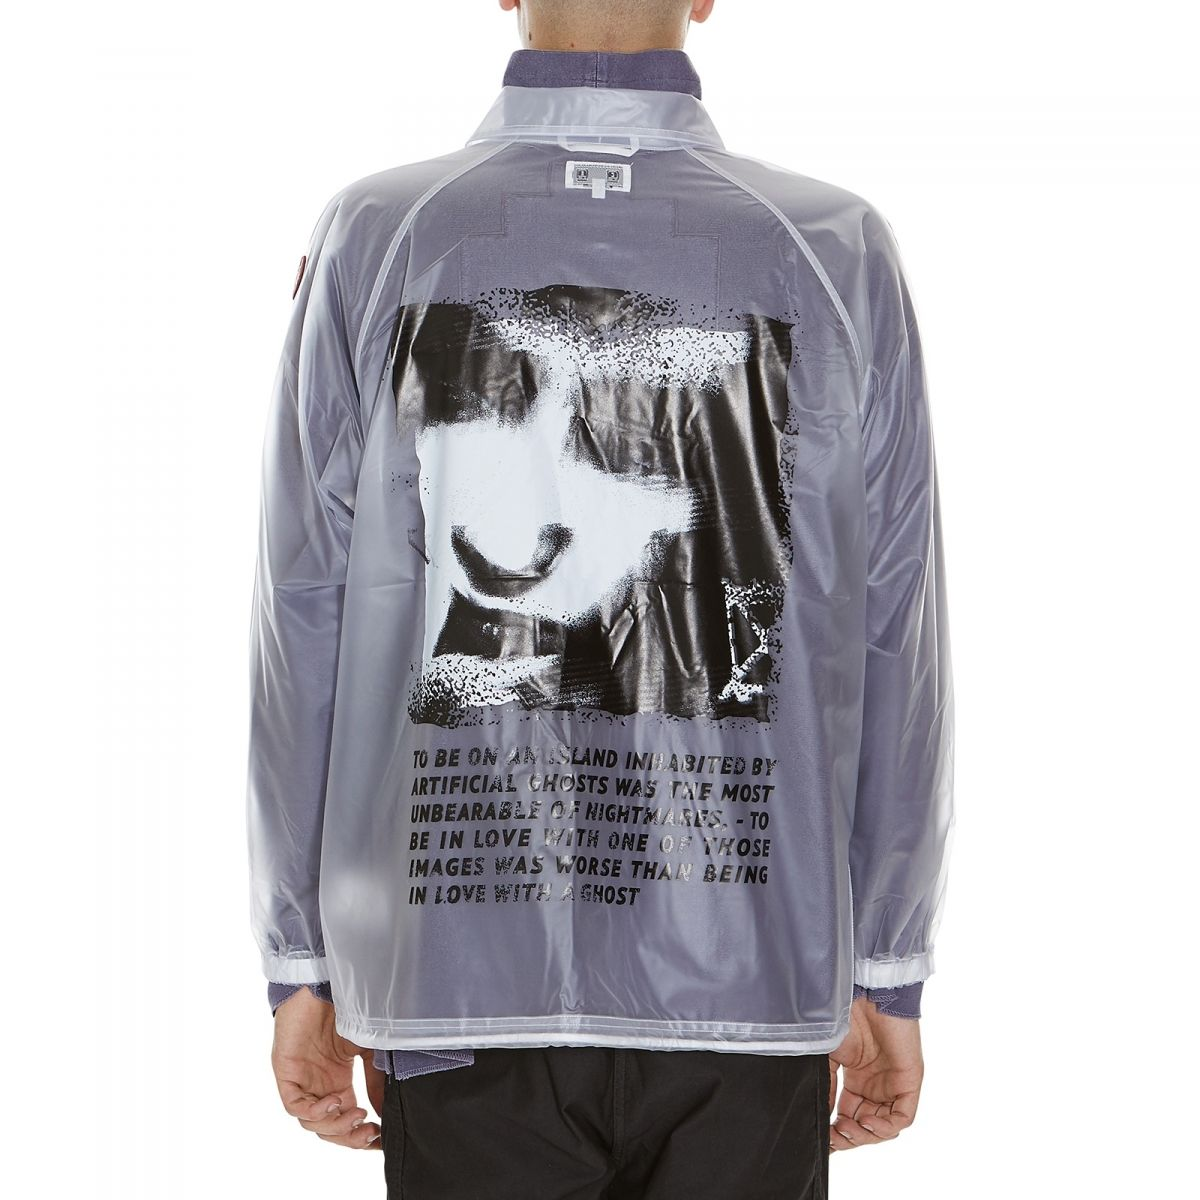 T shirt design 2 zeixs - Cav Empt Cav Empt X Showstudio X Machine A Pvc Jacket Jackets Slam Jam